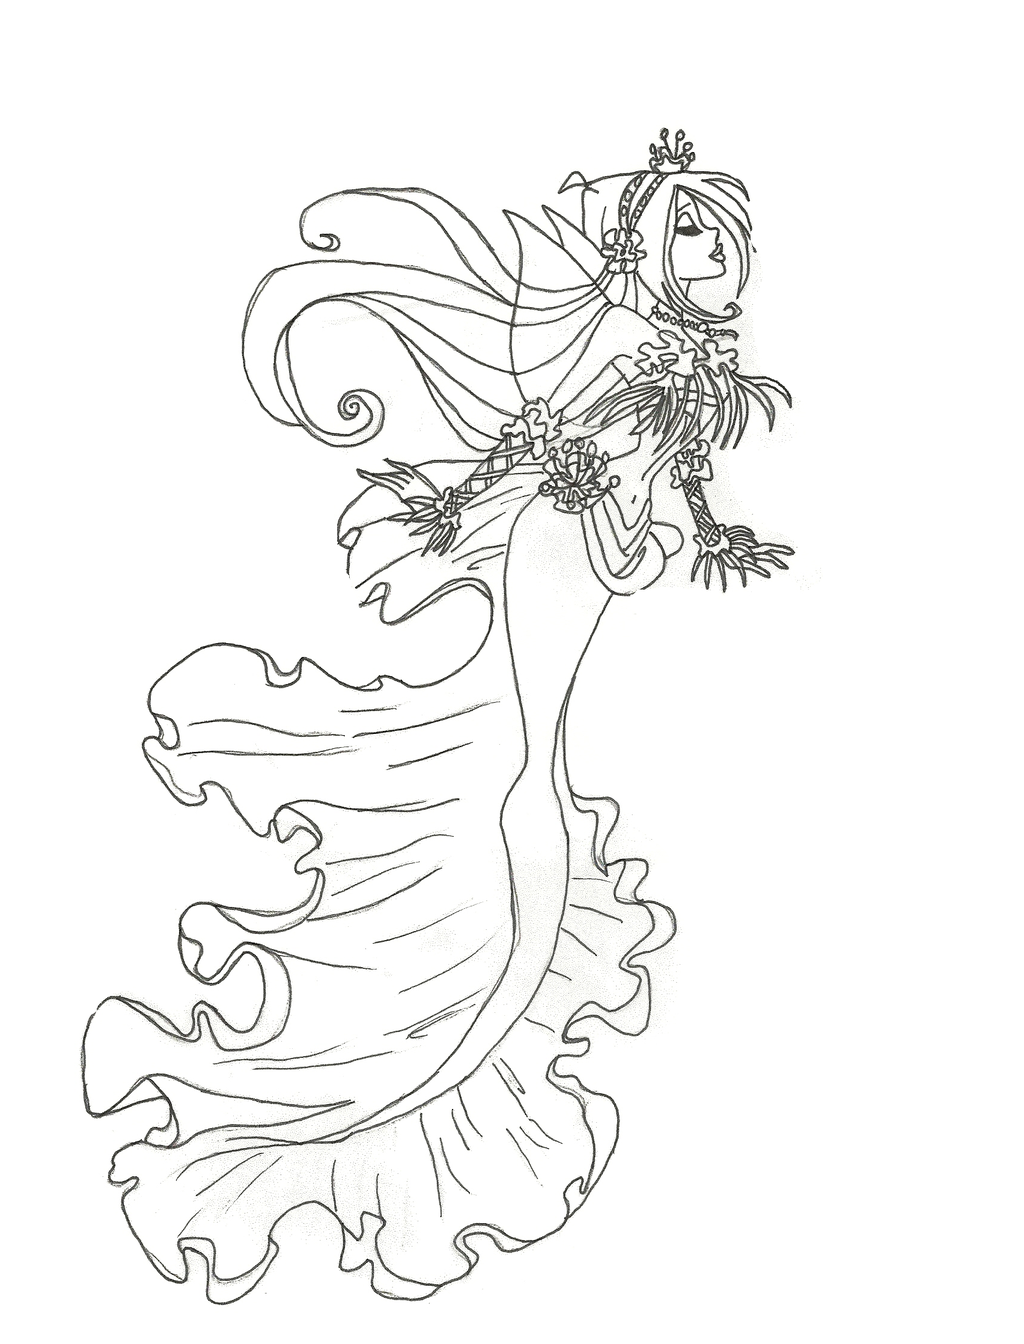 winx club mermaid flora coloring page by